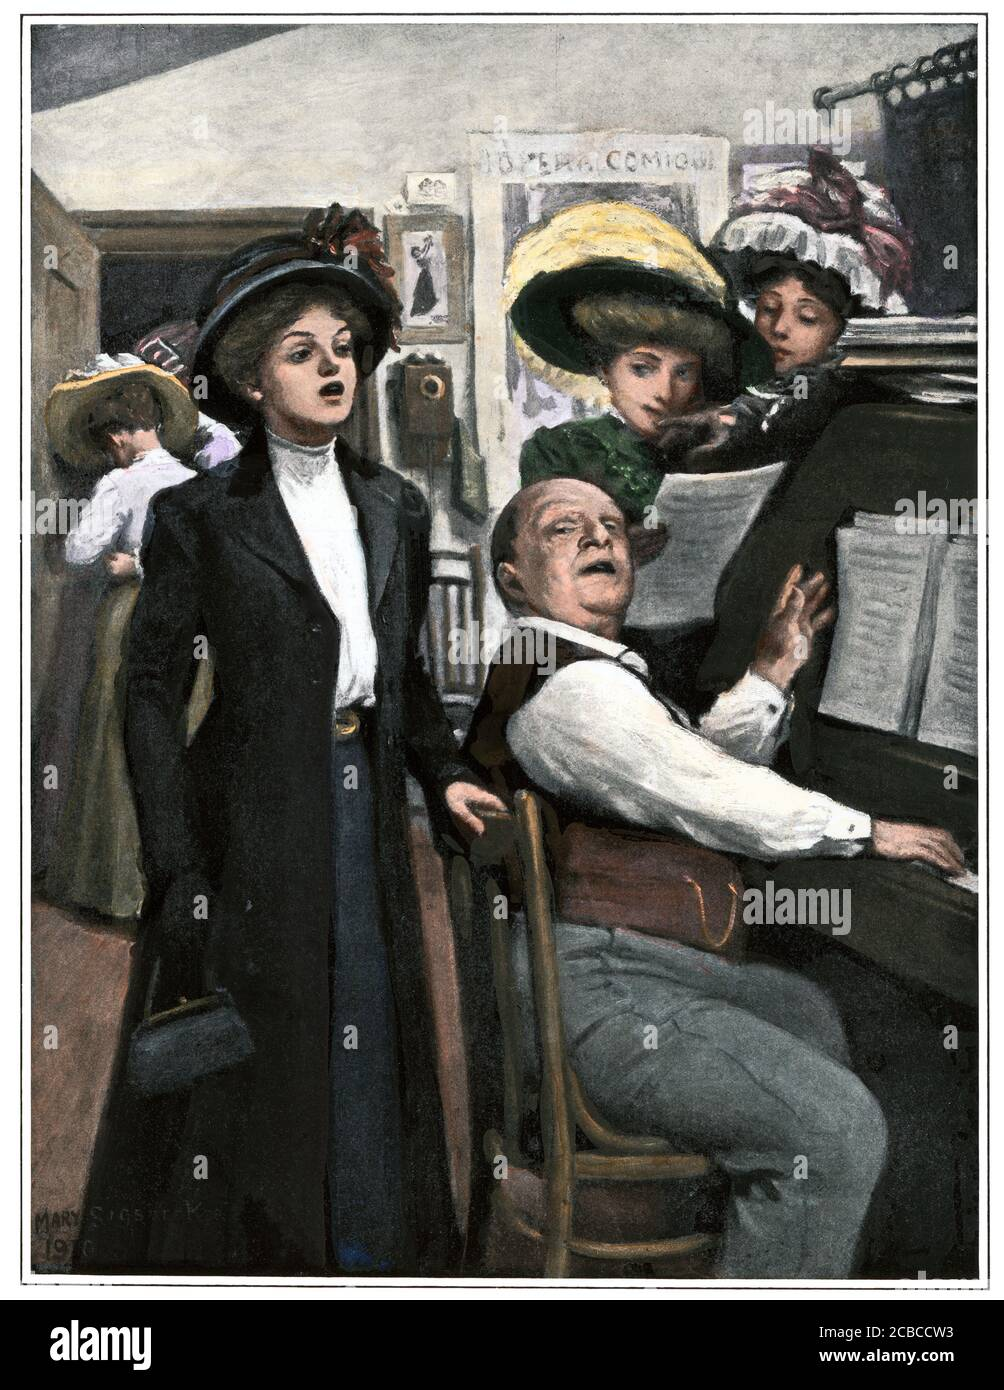 Aspiring young singer auditioning, early 1900s. Hand-colored halftone of an illustration Stock Photo